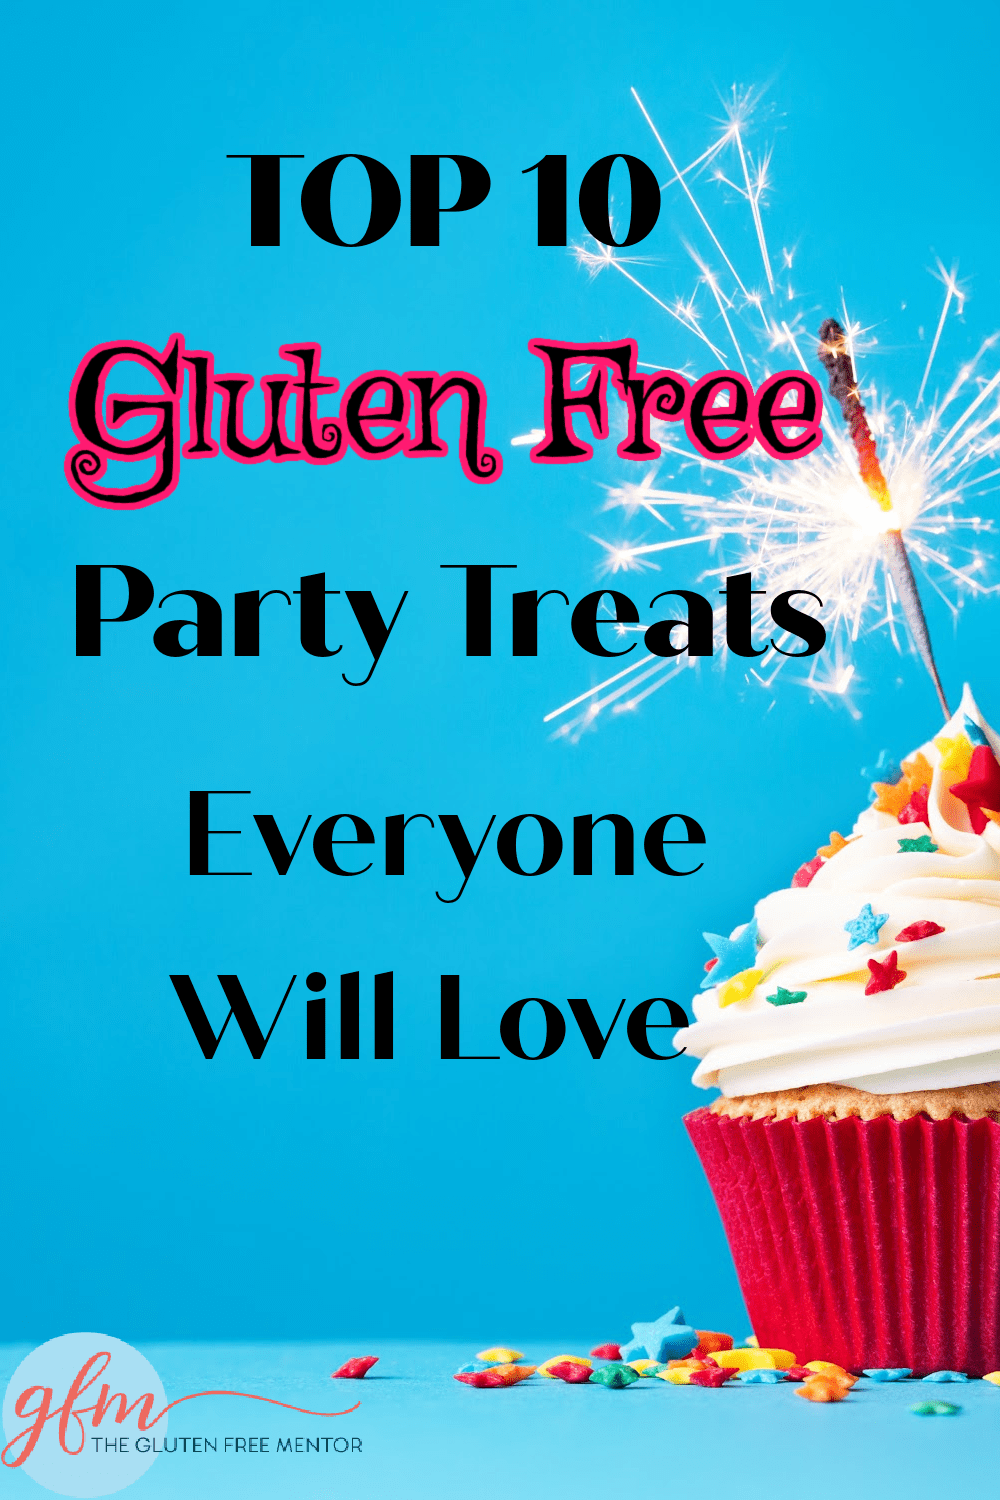 Pin Gluten Free Party Treats Everyone Will Love to your Pinterest Account